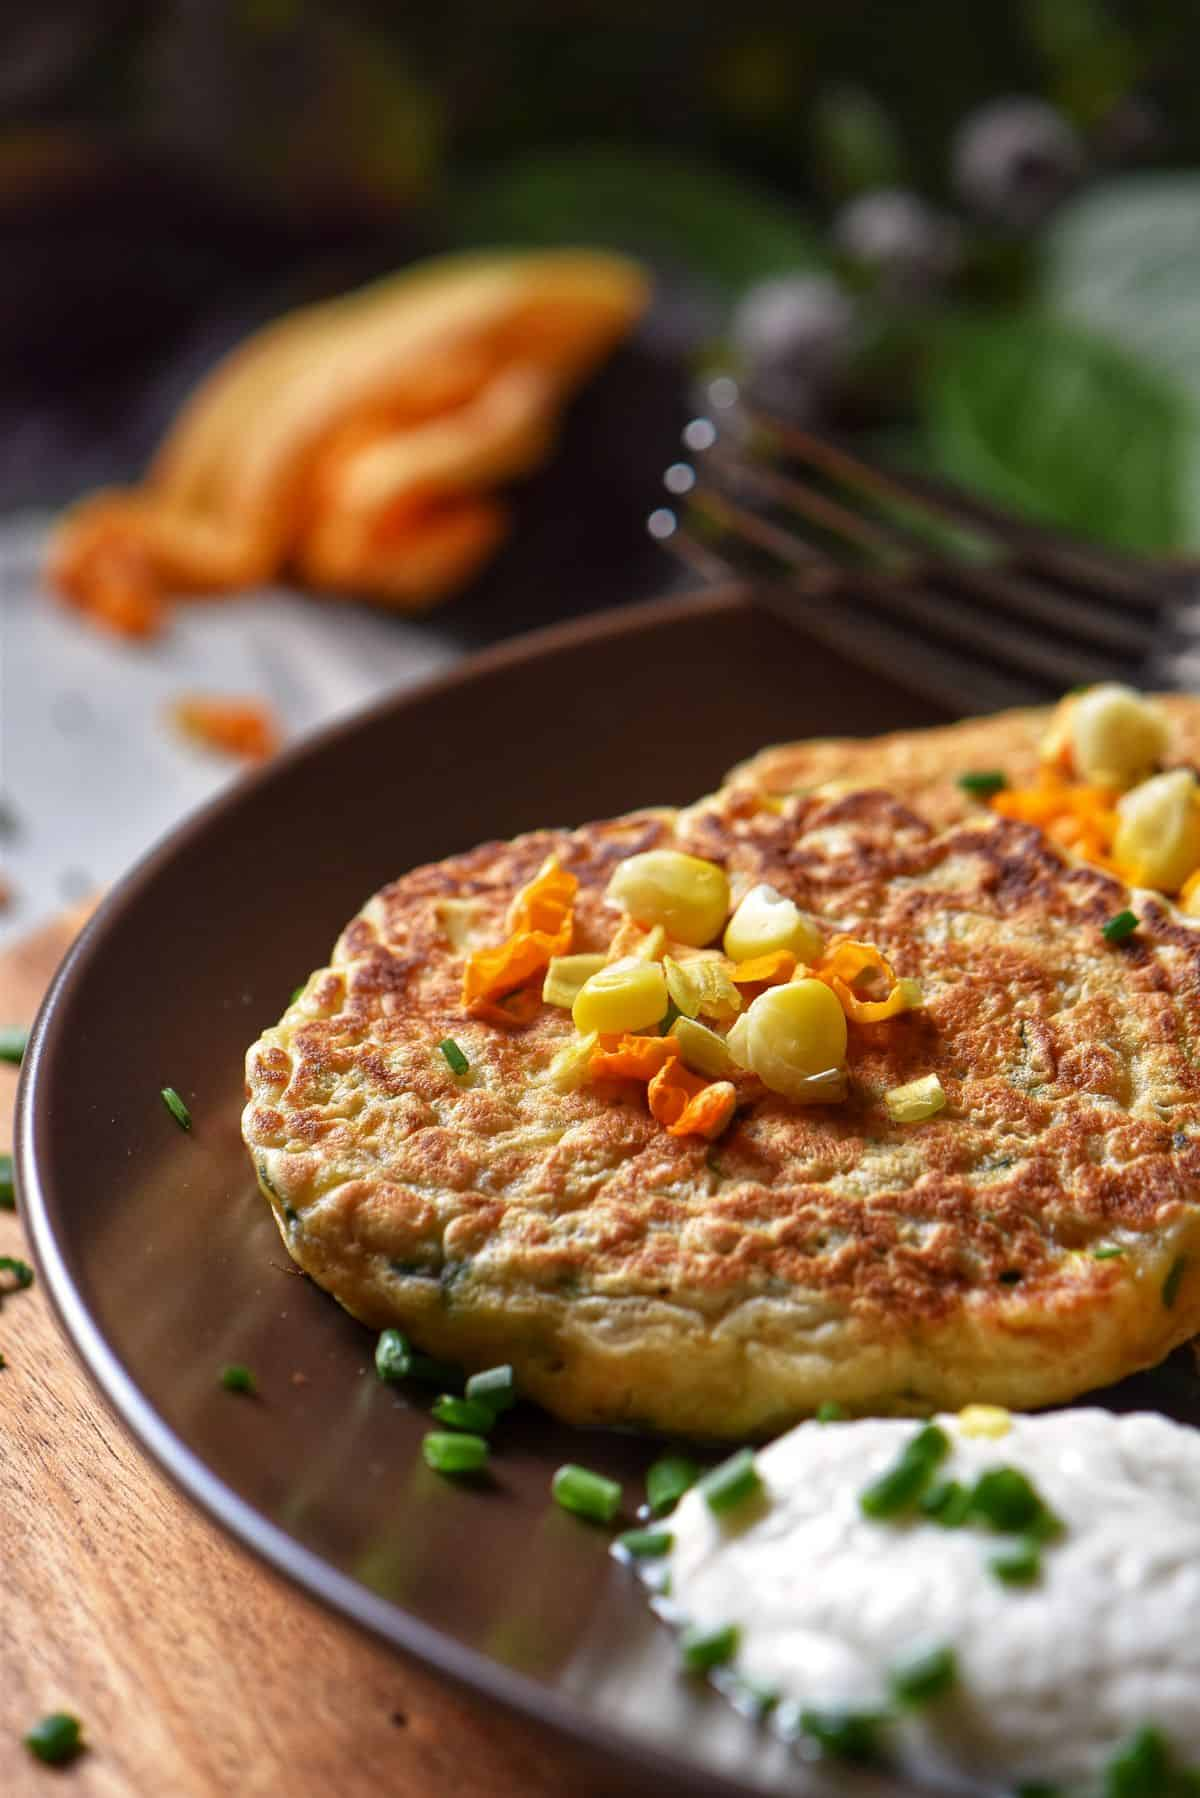 Zucchini pancakes and yogurt sauce in a dinner plate.